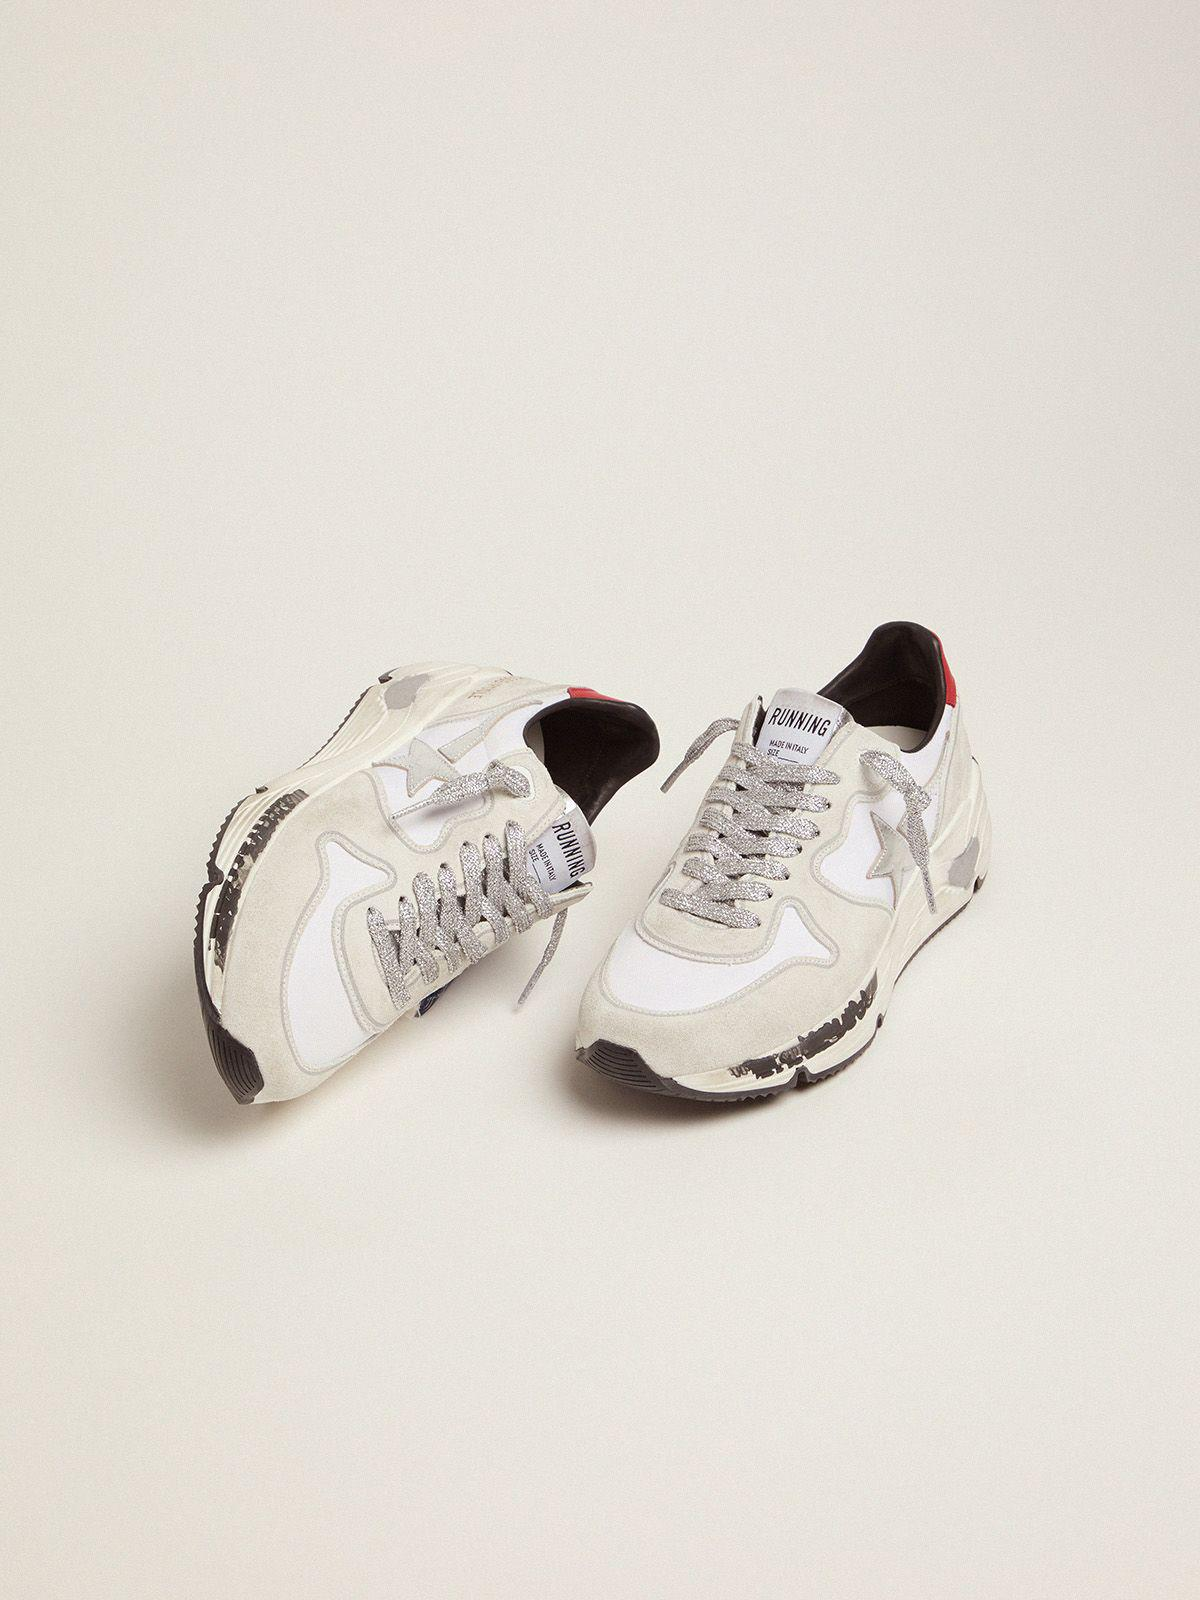 Running Sole sneakers with red heel tab and silver star 1